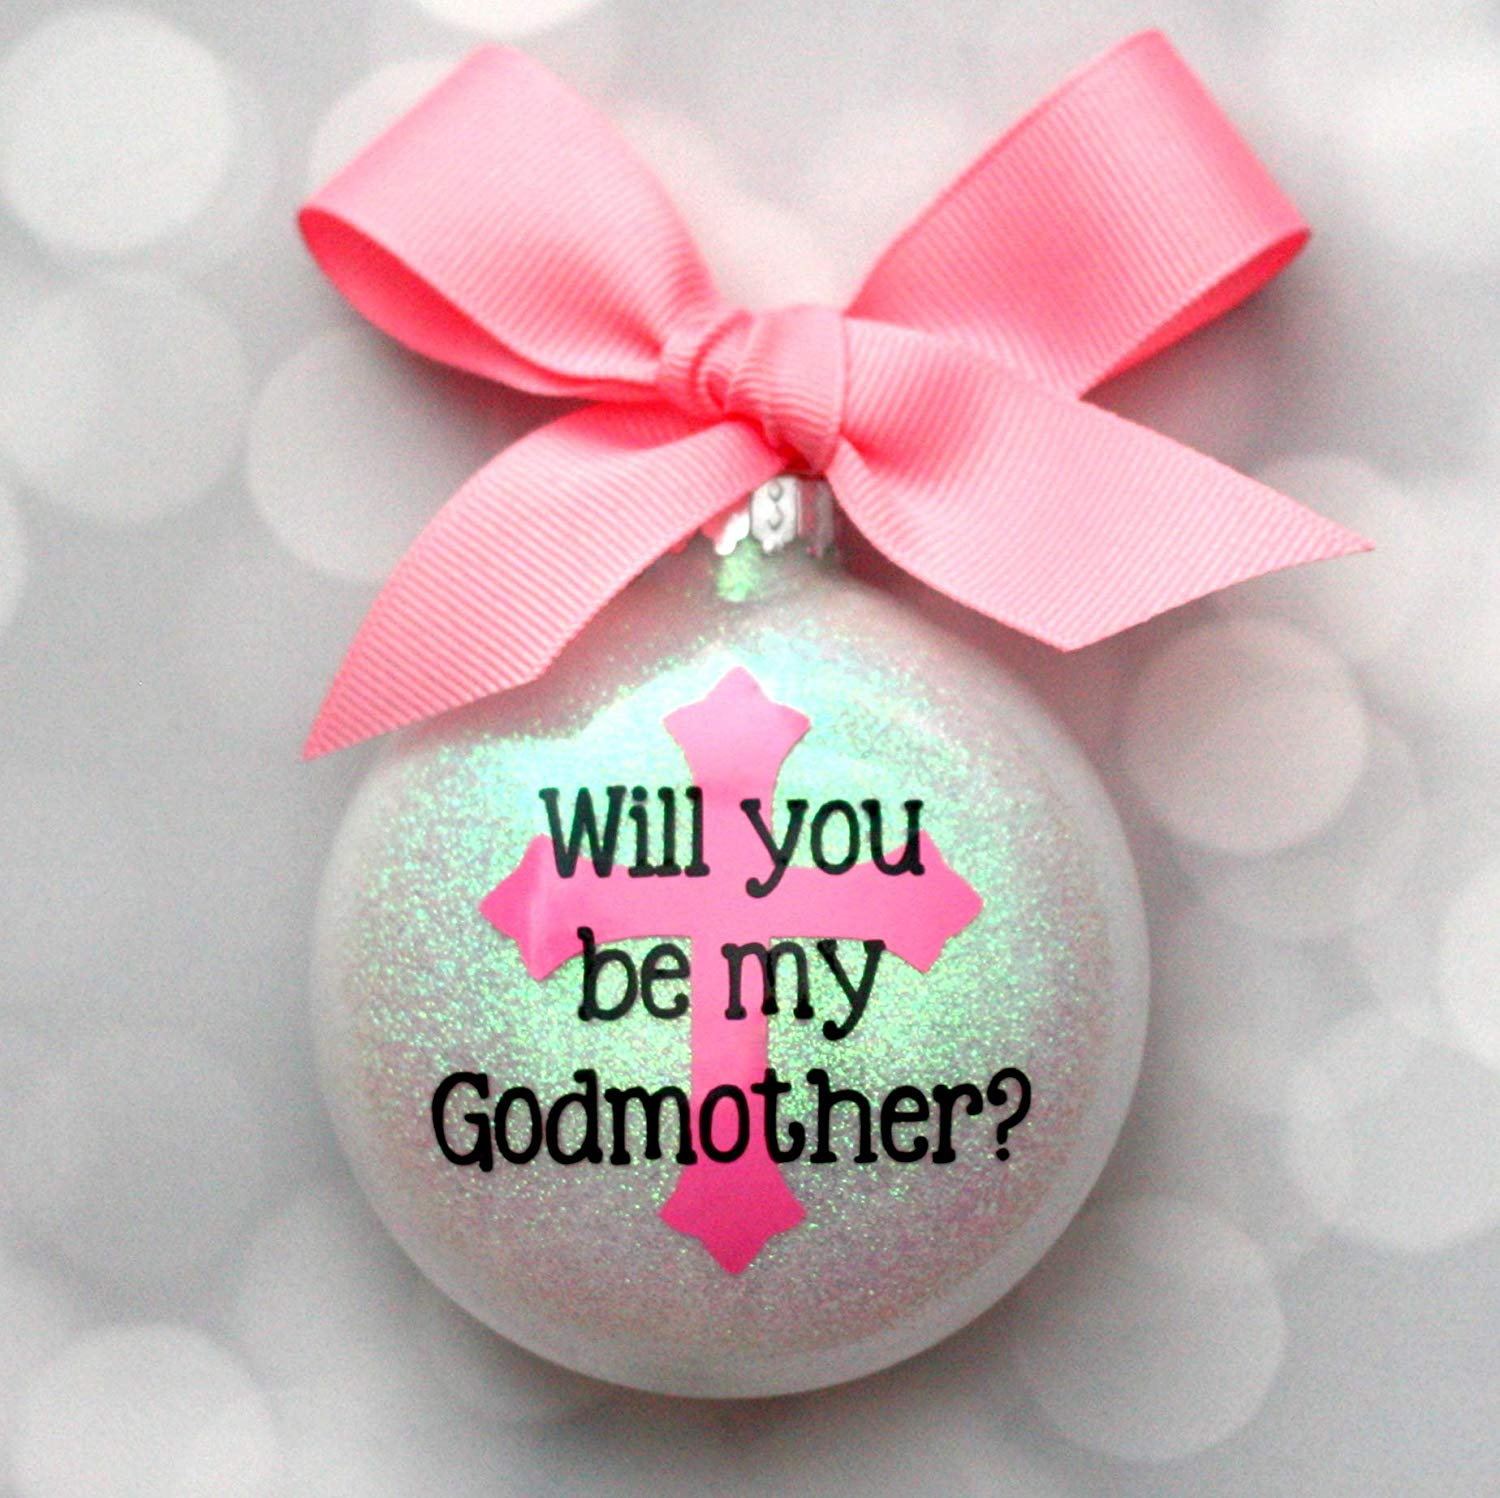 godparent proposal, creative proposal ideas, what are godparents, pinterest trends, will you be my godparents, how to ask godparents, will you be my godfather gifts, asking someone to be a godparent, creative ways to ask godparents, poem for godmothers